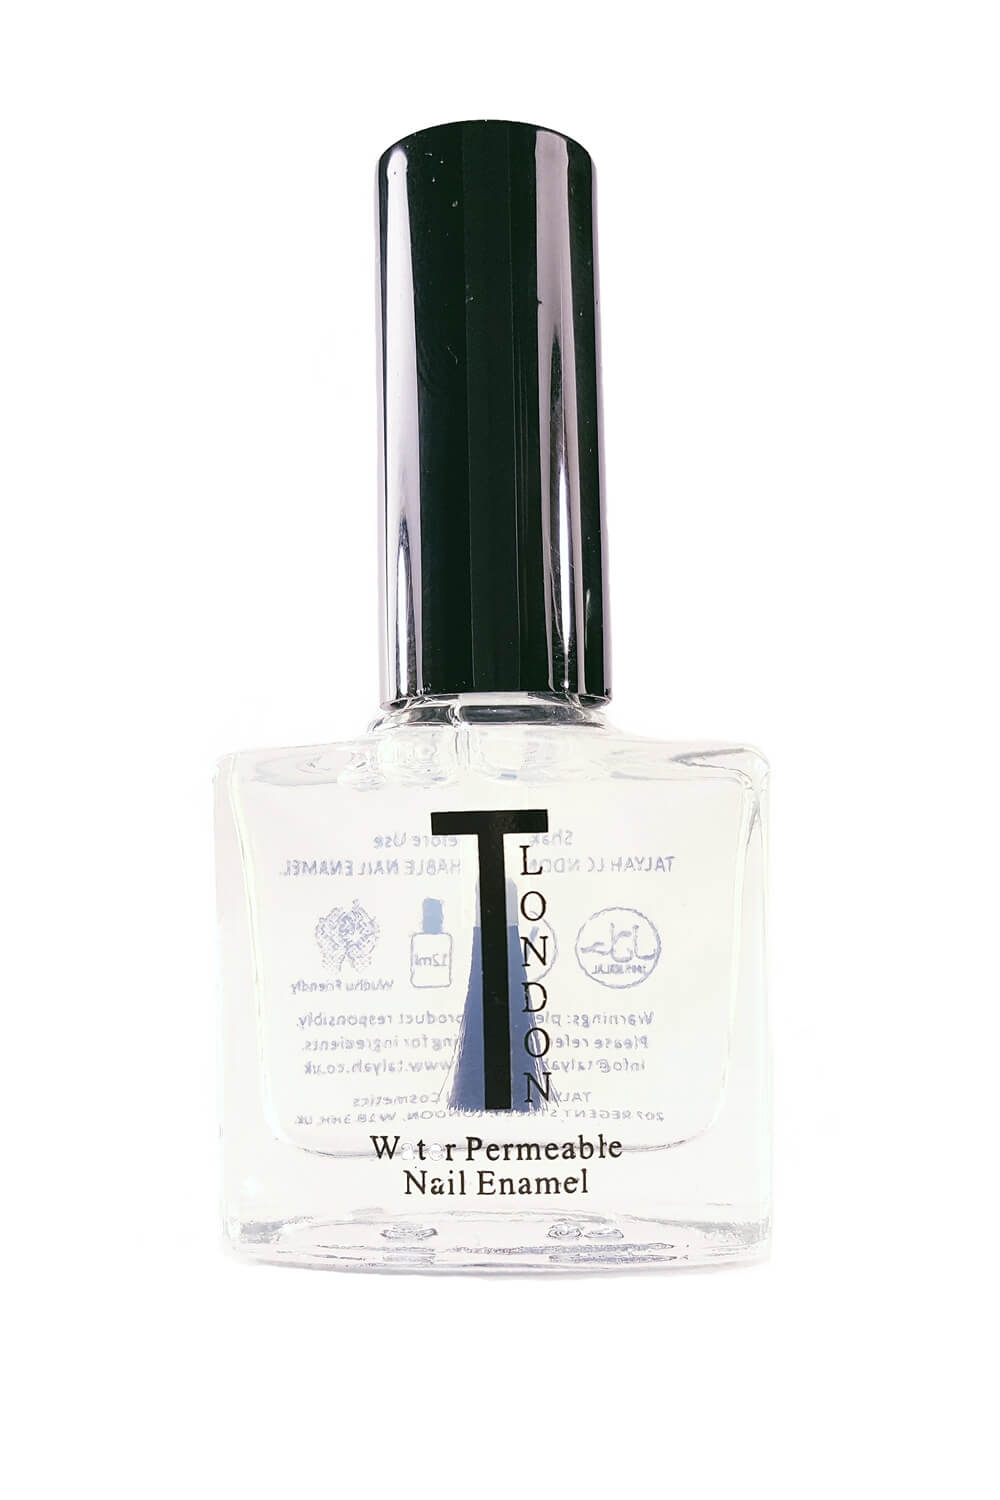 Vernis perméable top coat